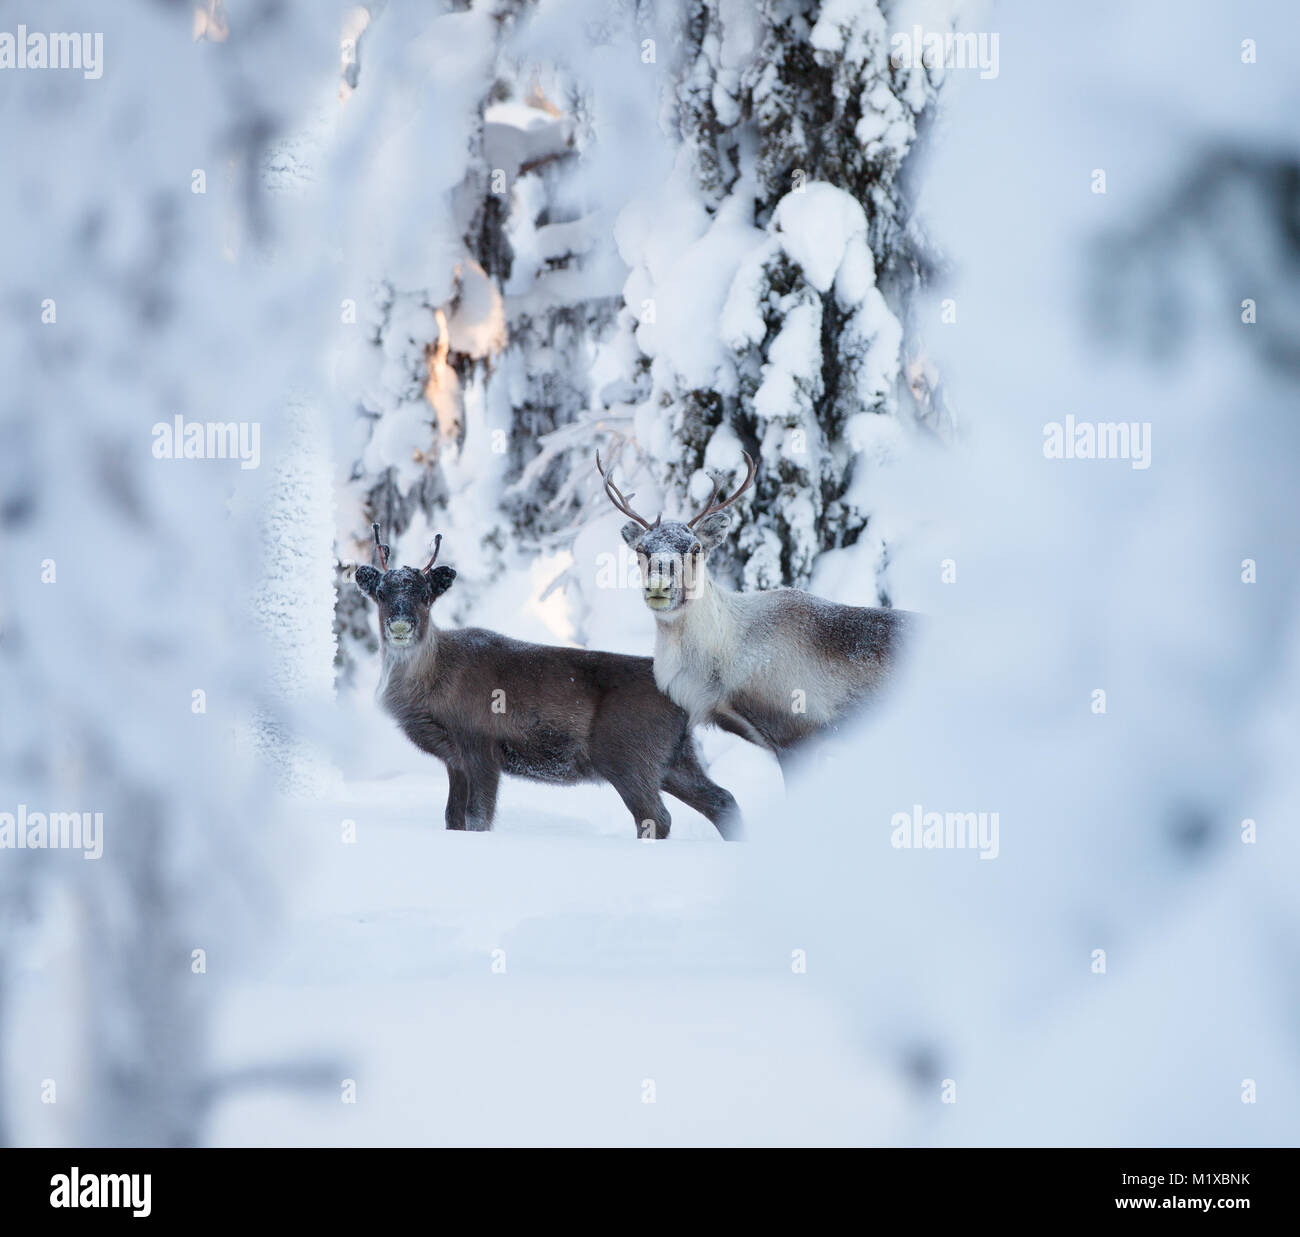 Reindeers in an arctic snowy forest Stock Photo